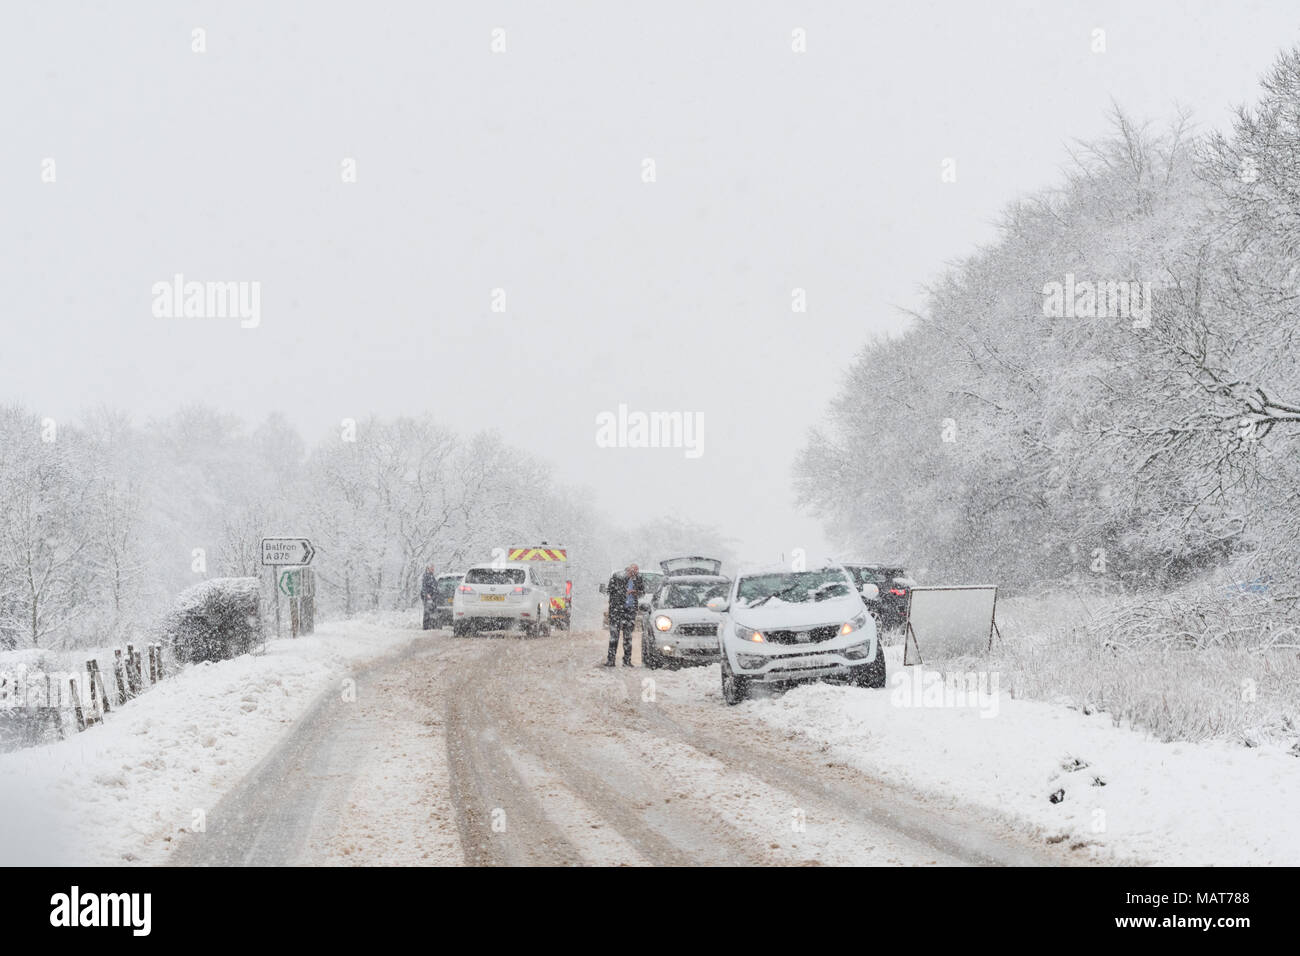 Stirlingshire, Scotland, UK - 4 April 2018: UK weather - tricky driving conditions  on the A811 road this morning as the central belt wakes up to more snow. Credit: Kay Roxby/Alamy Live News - Stock Image